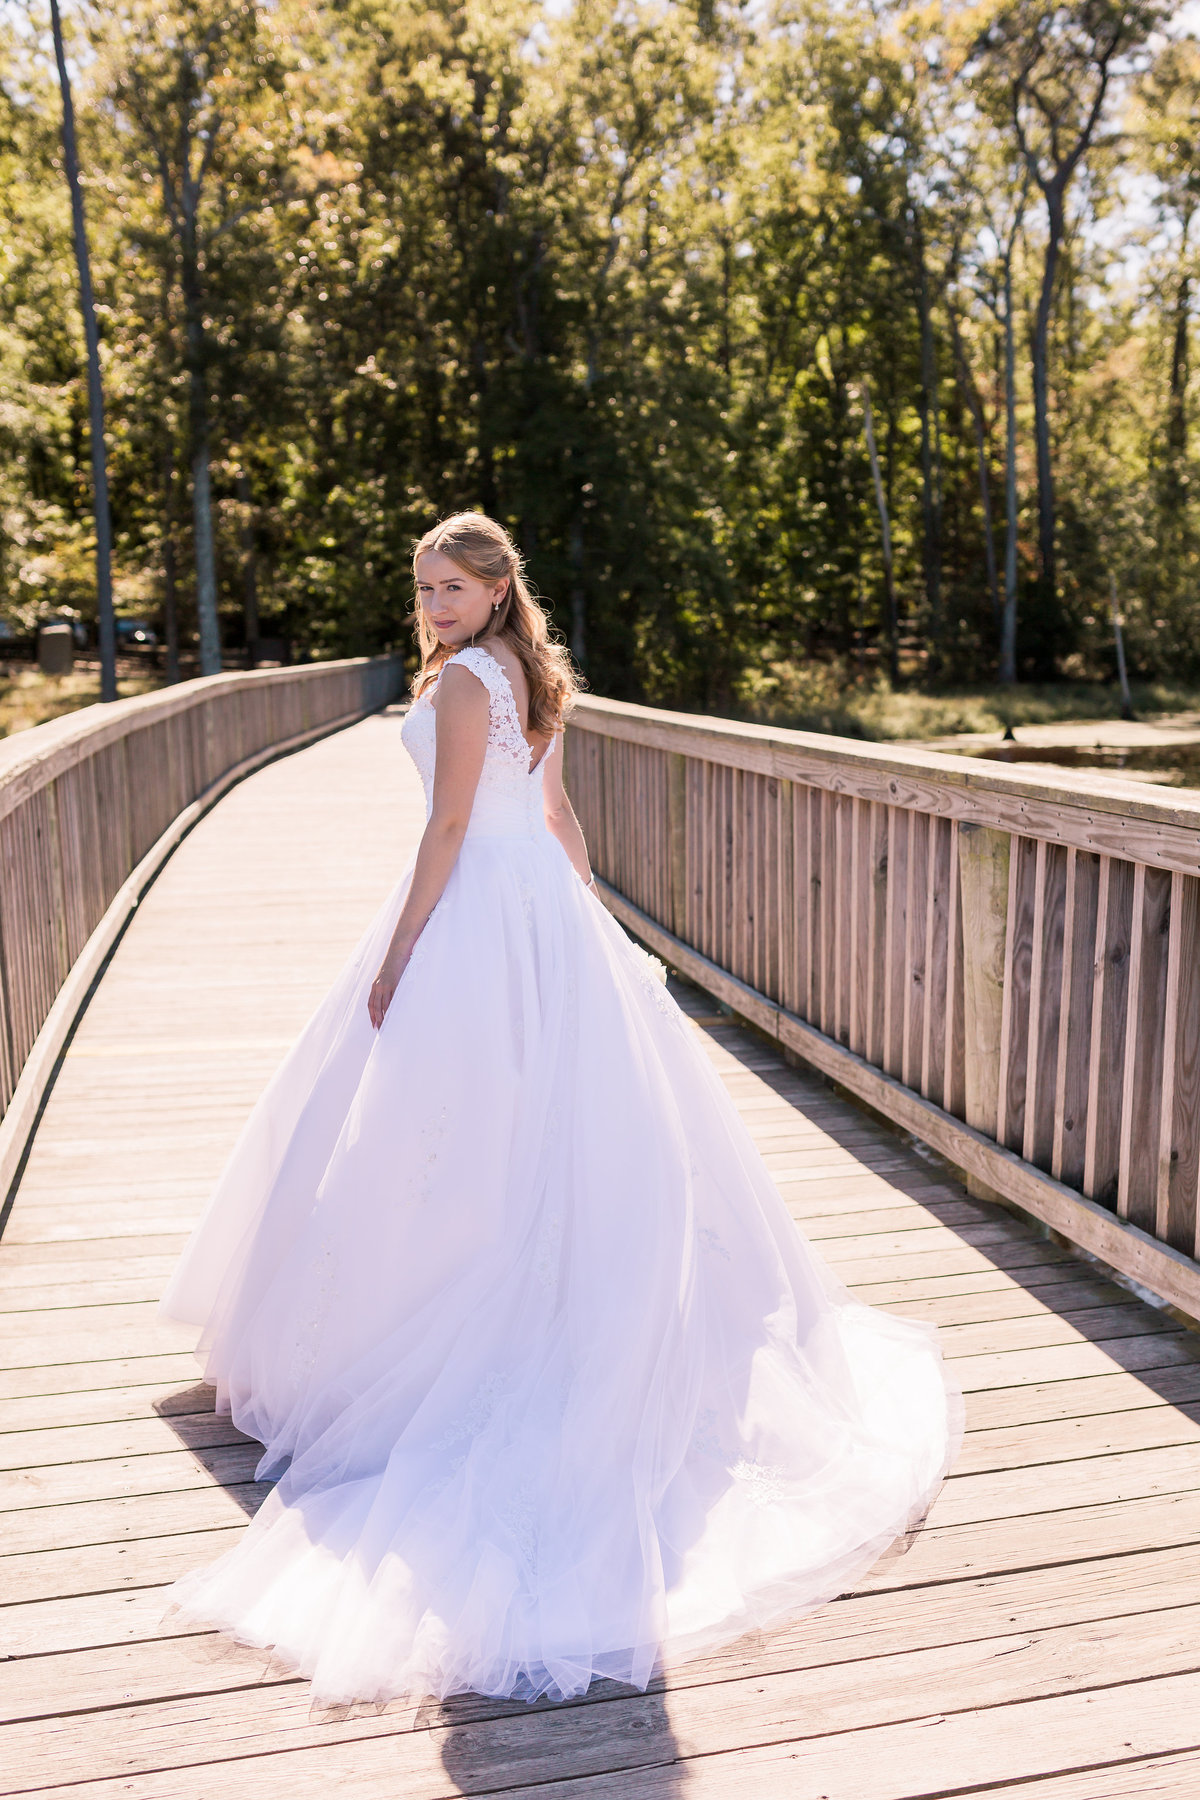 A bride in her dress at Newport News Park